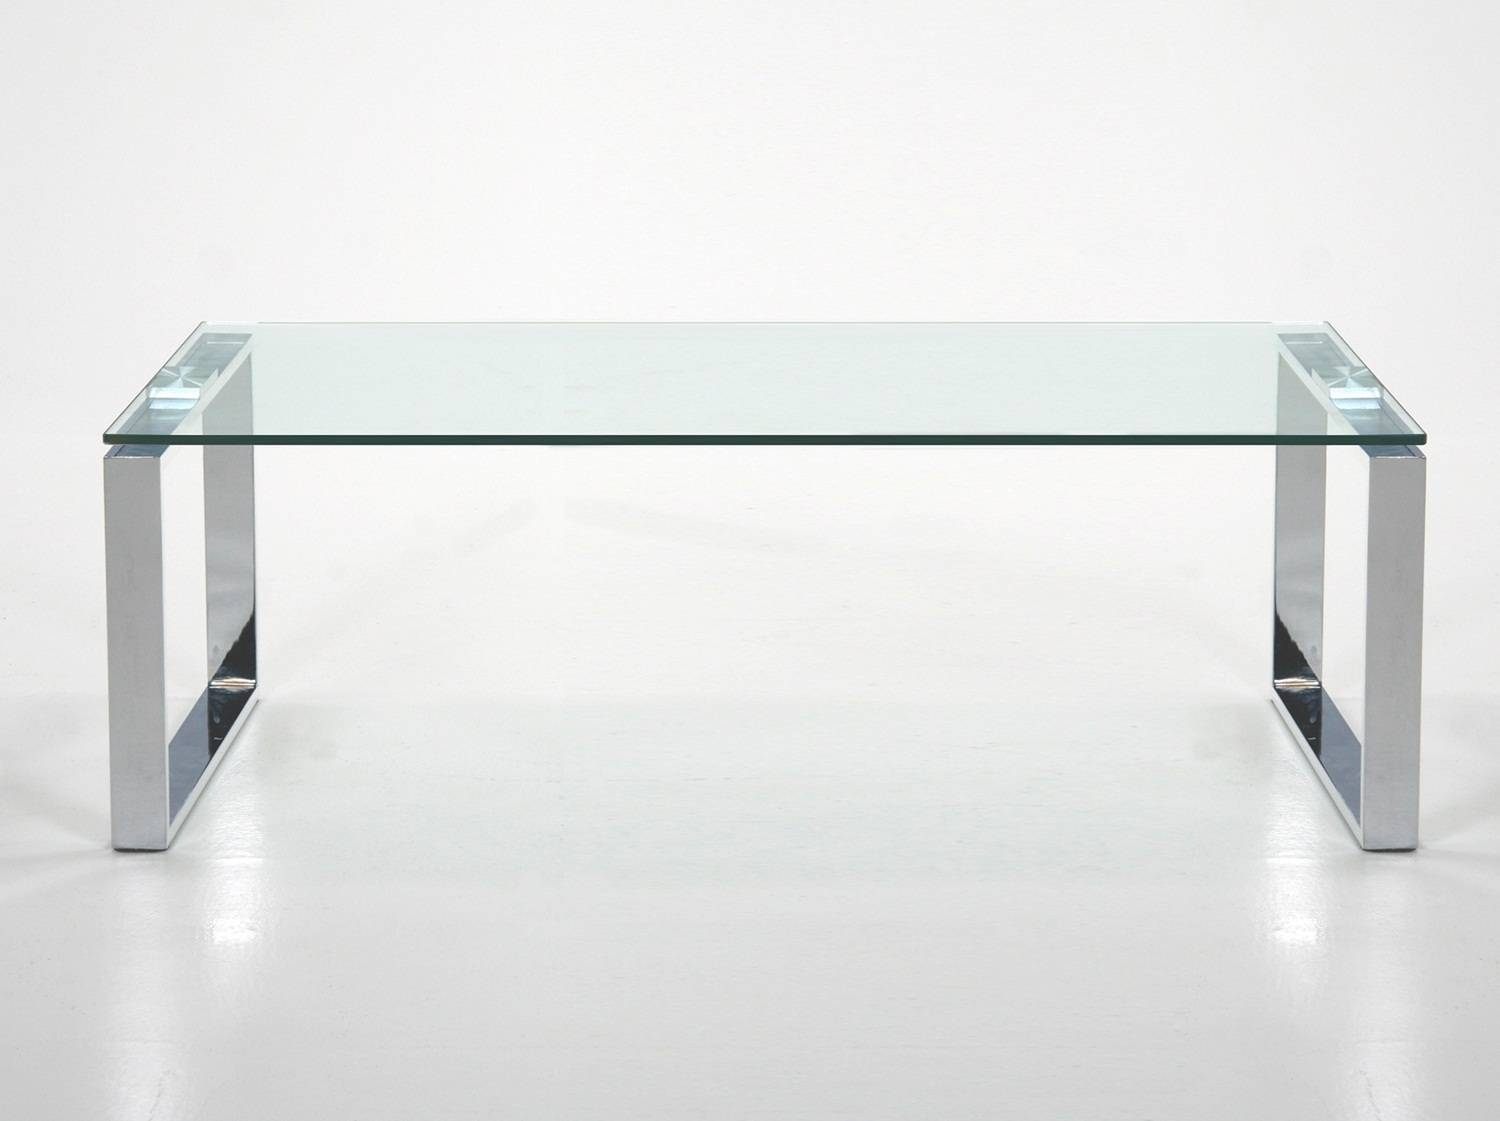 Extraordinary Modern Chrome Coffee Table – Chrome Coffee Table inside Chrome Coffee Tables (Image 14 of 30)